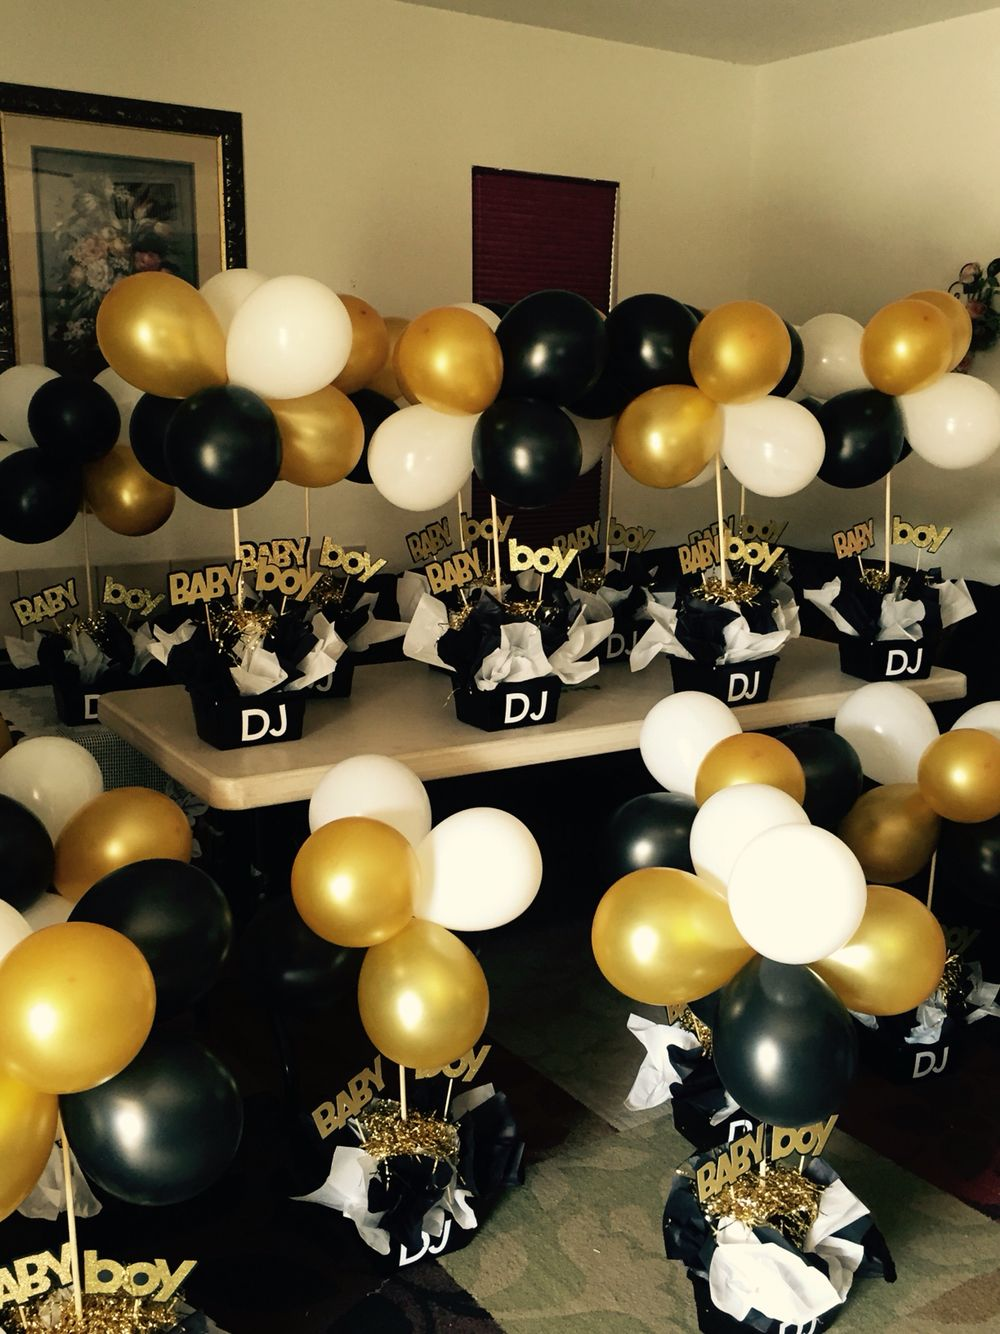 Birthday table decorations for men - Black And Gold Babyshower Centerpieces